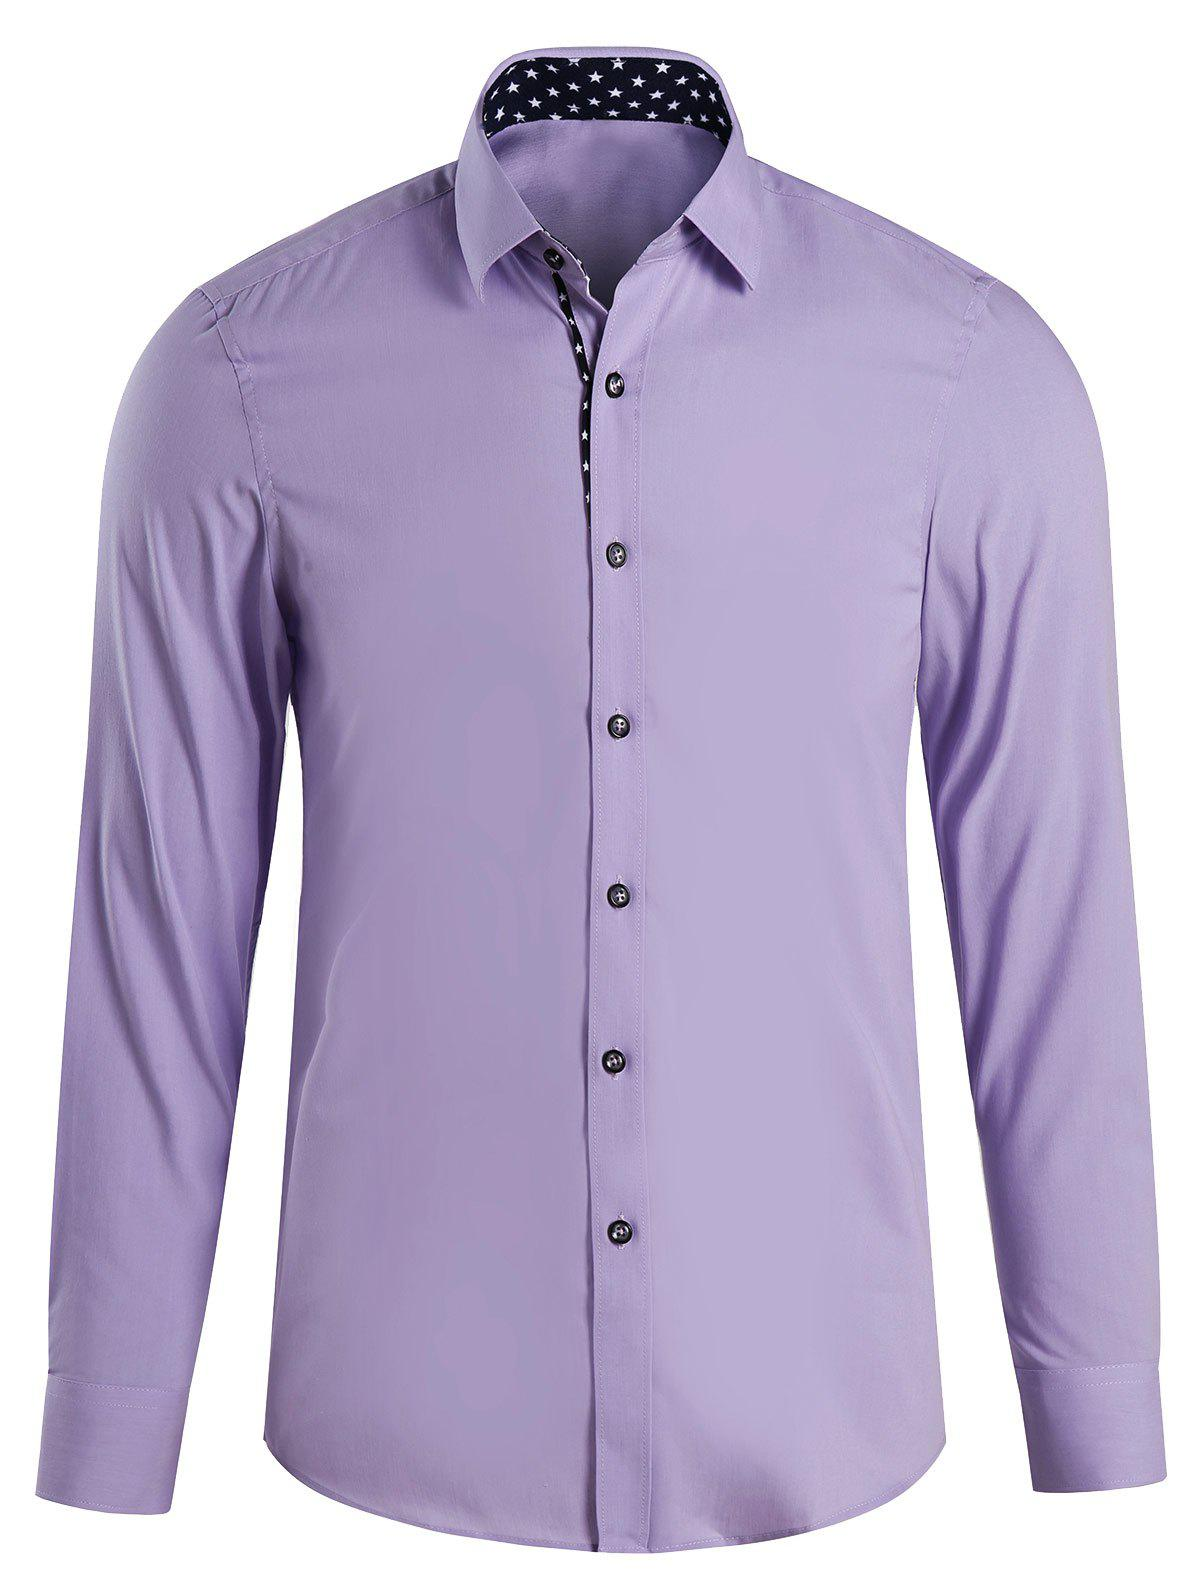 Men's Casual Printed Turn Down Collar Shirts - PURPLE 4XL